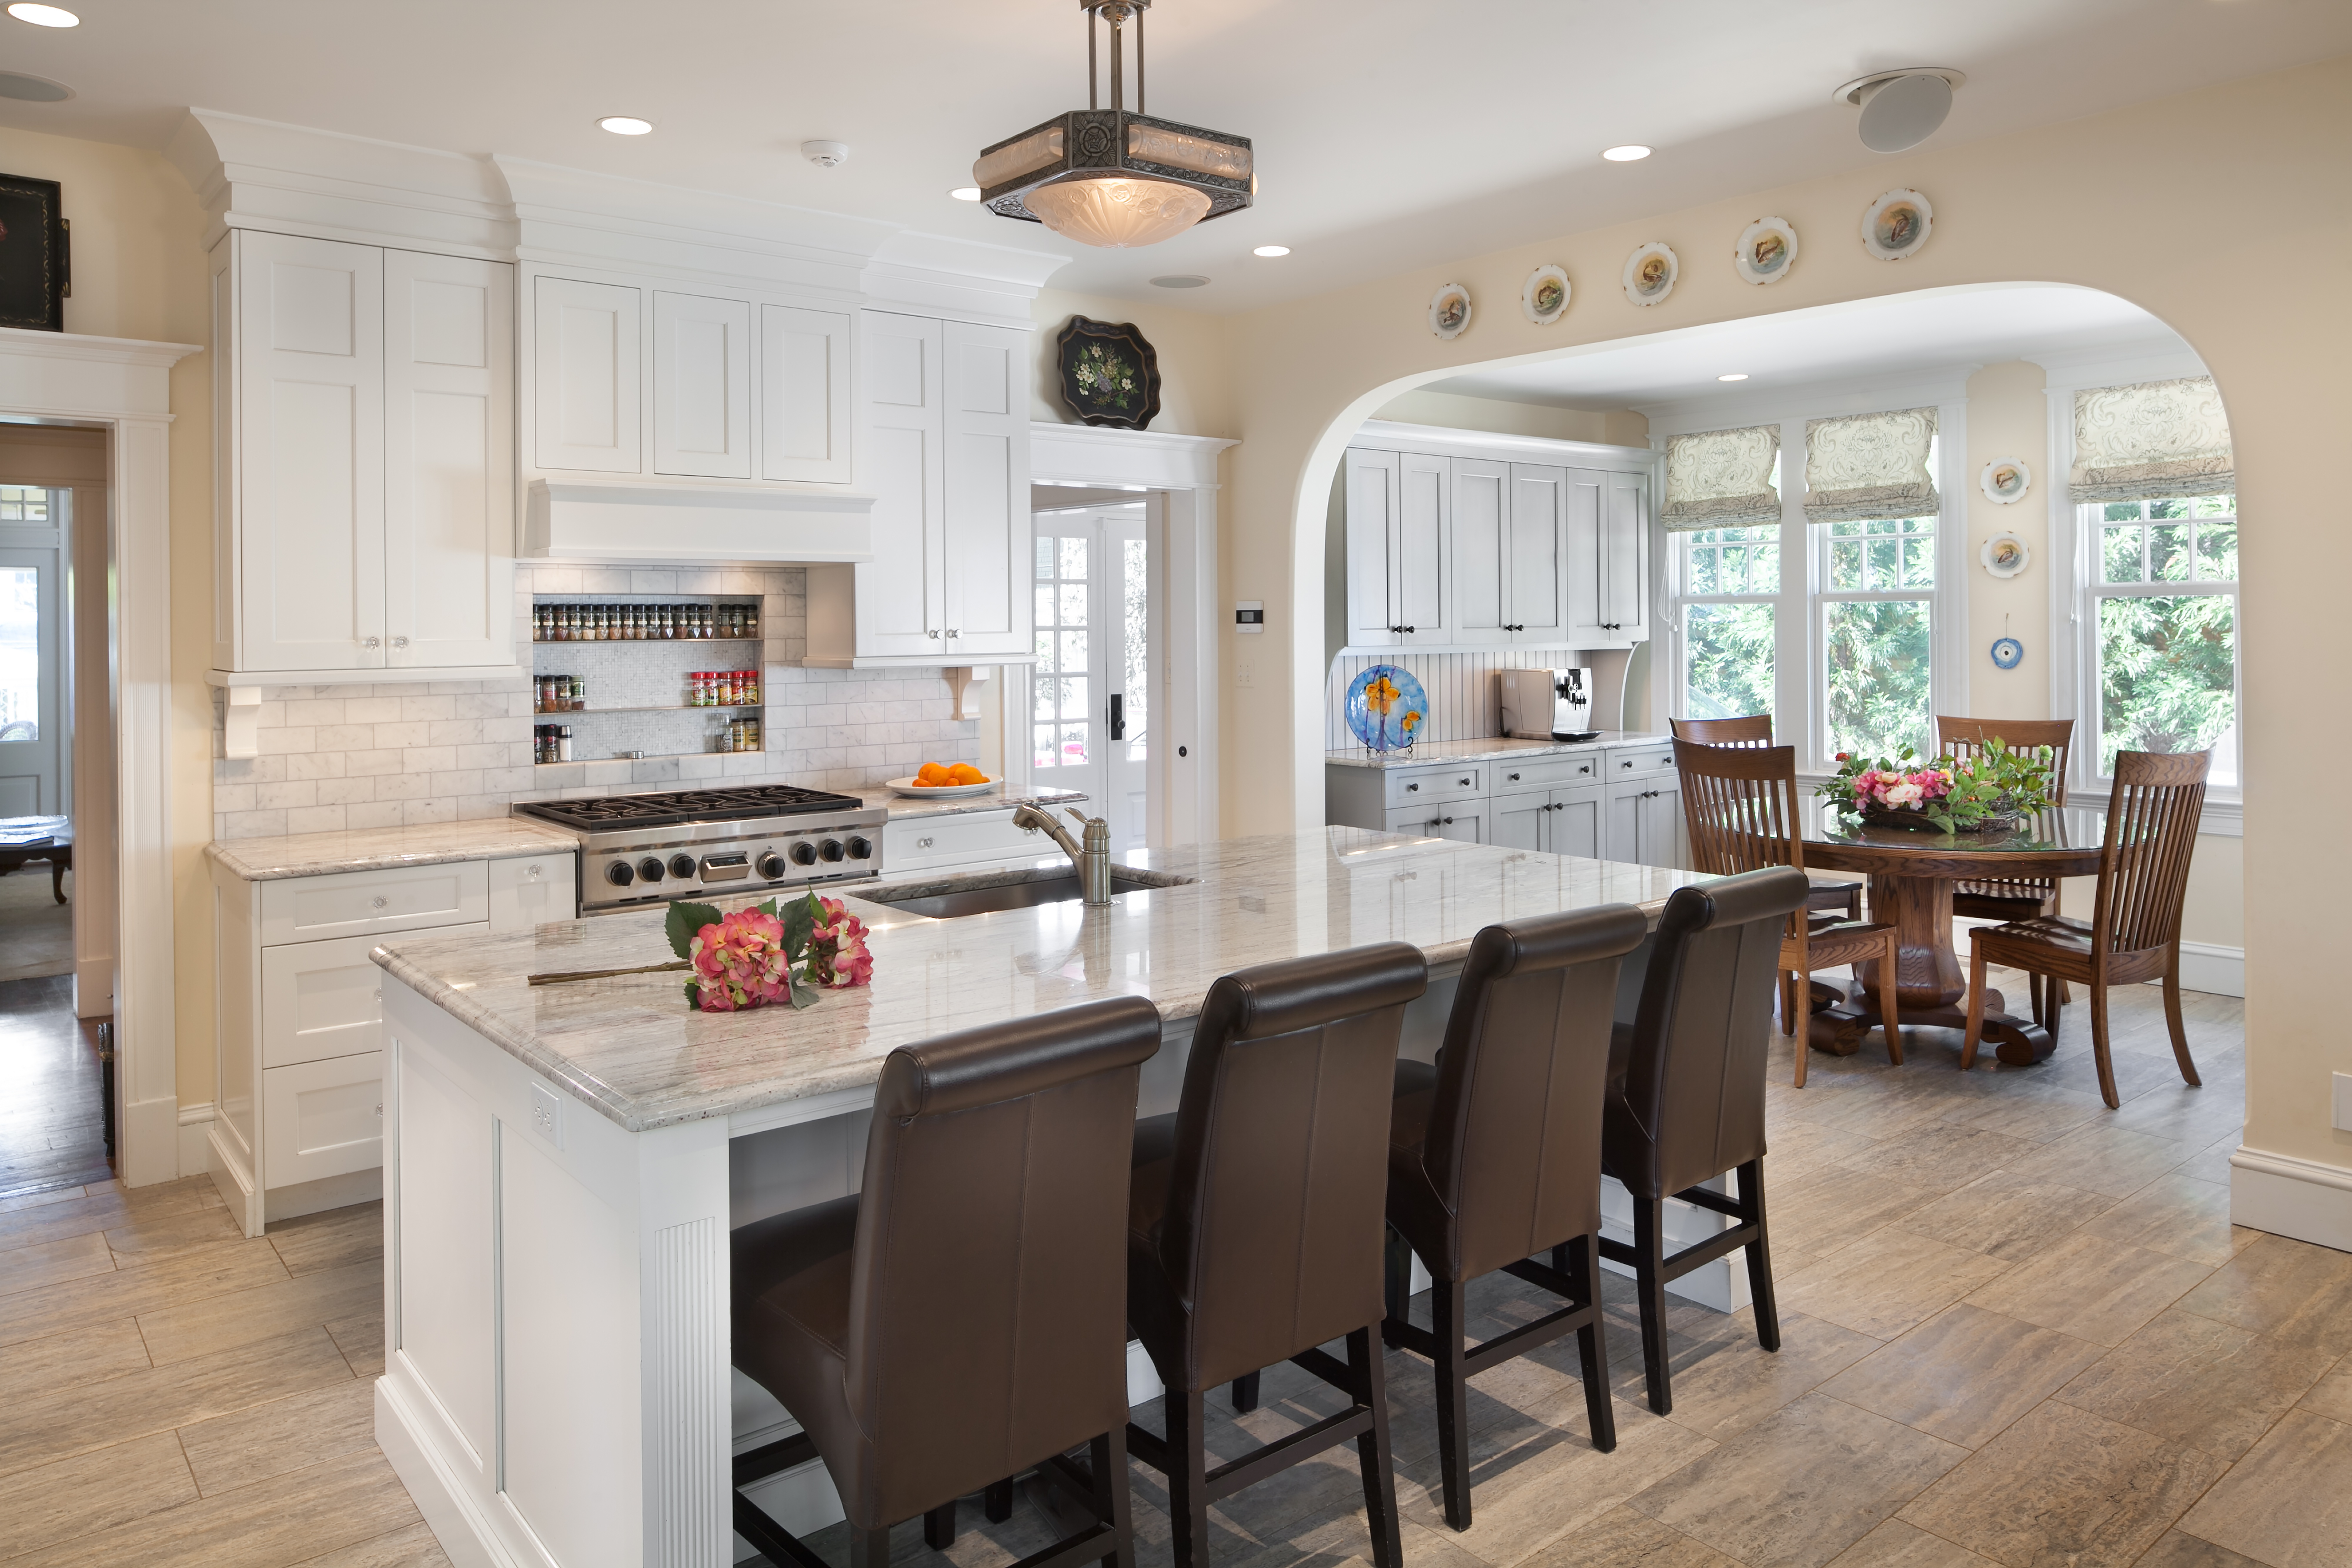 Angled View of Kitchen and Breakfast Nook